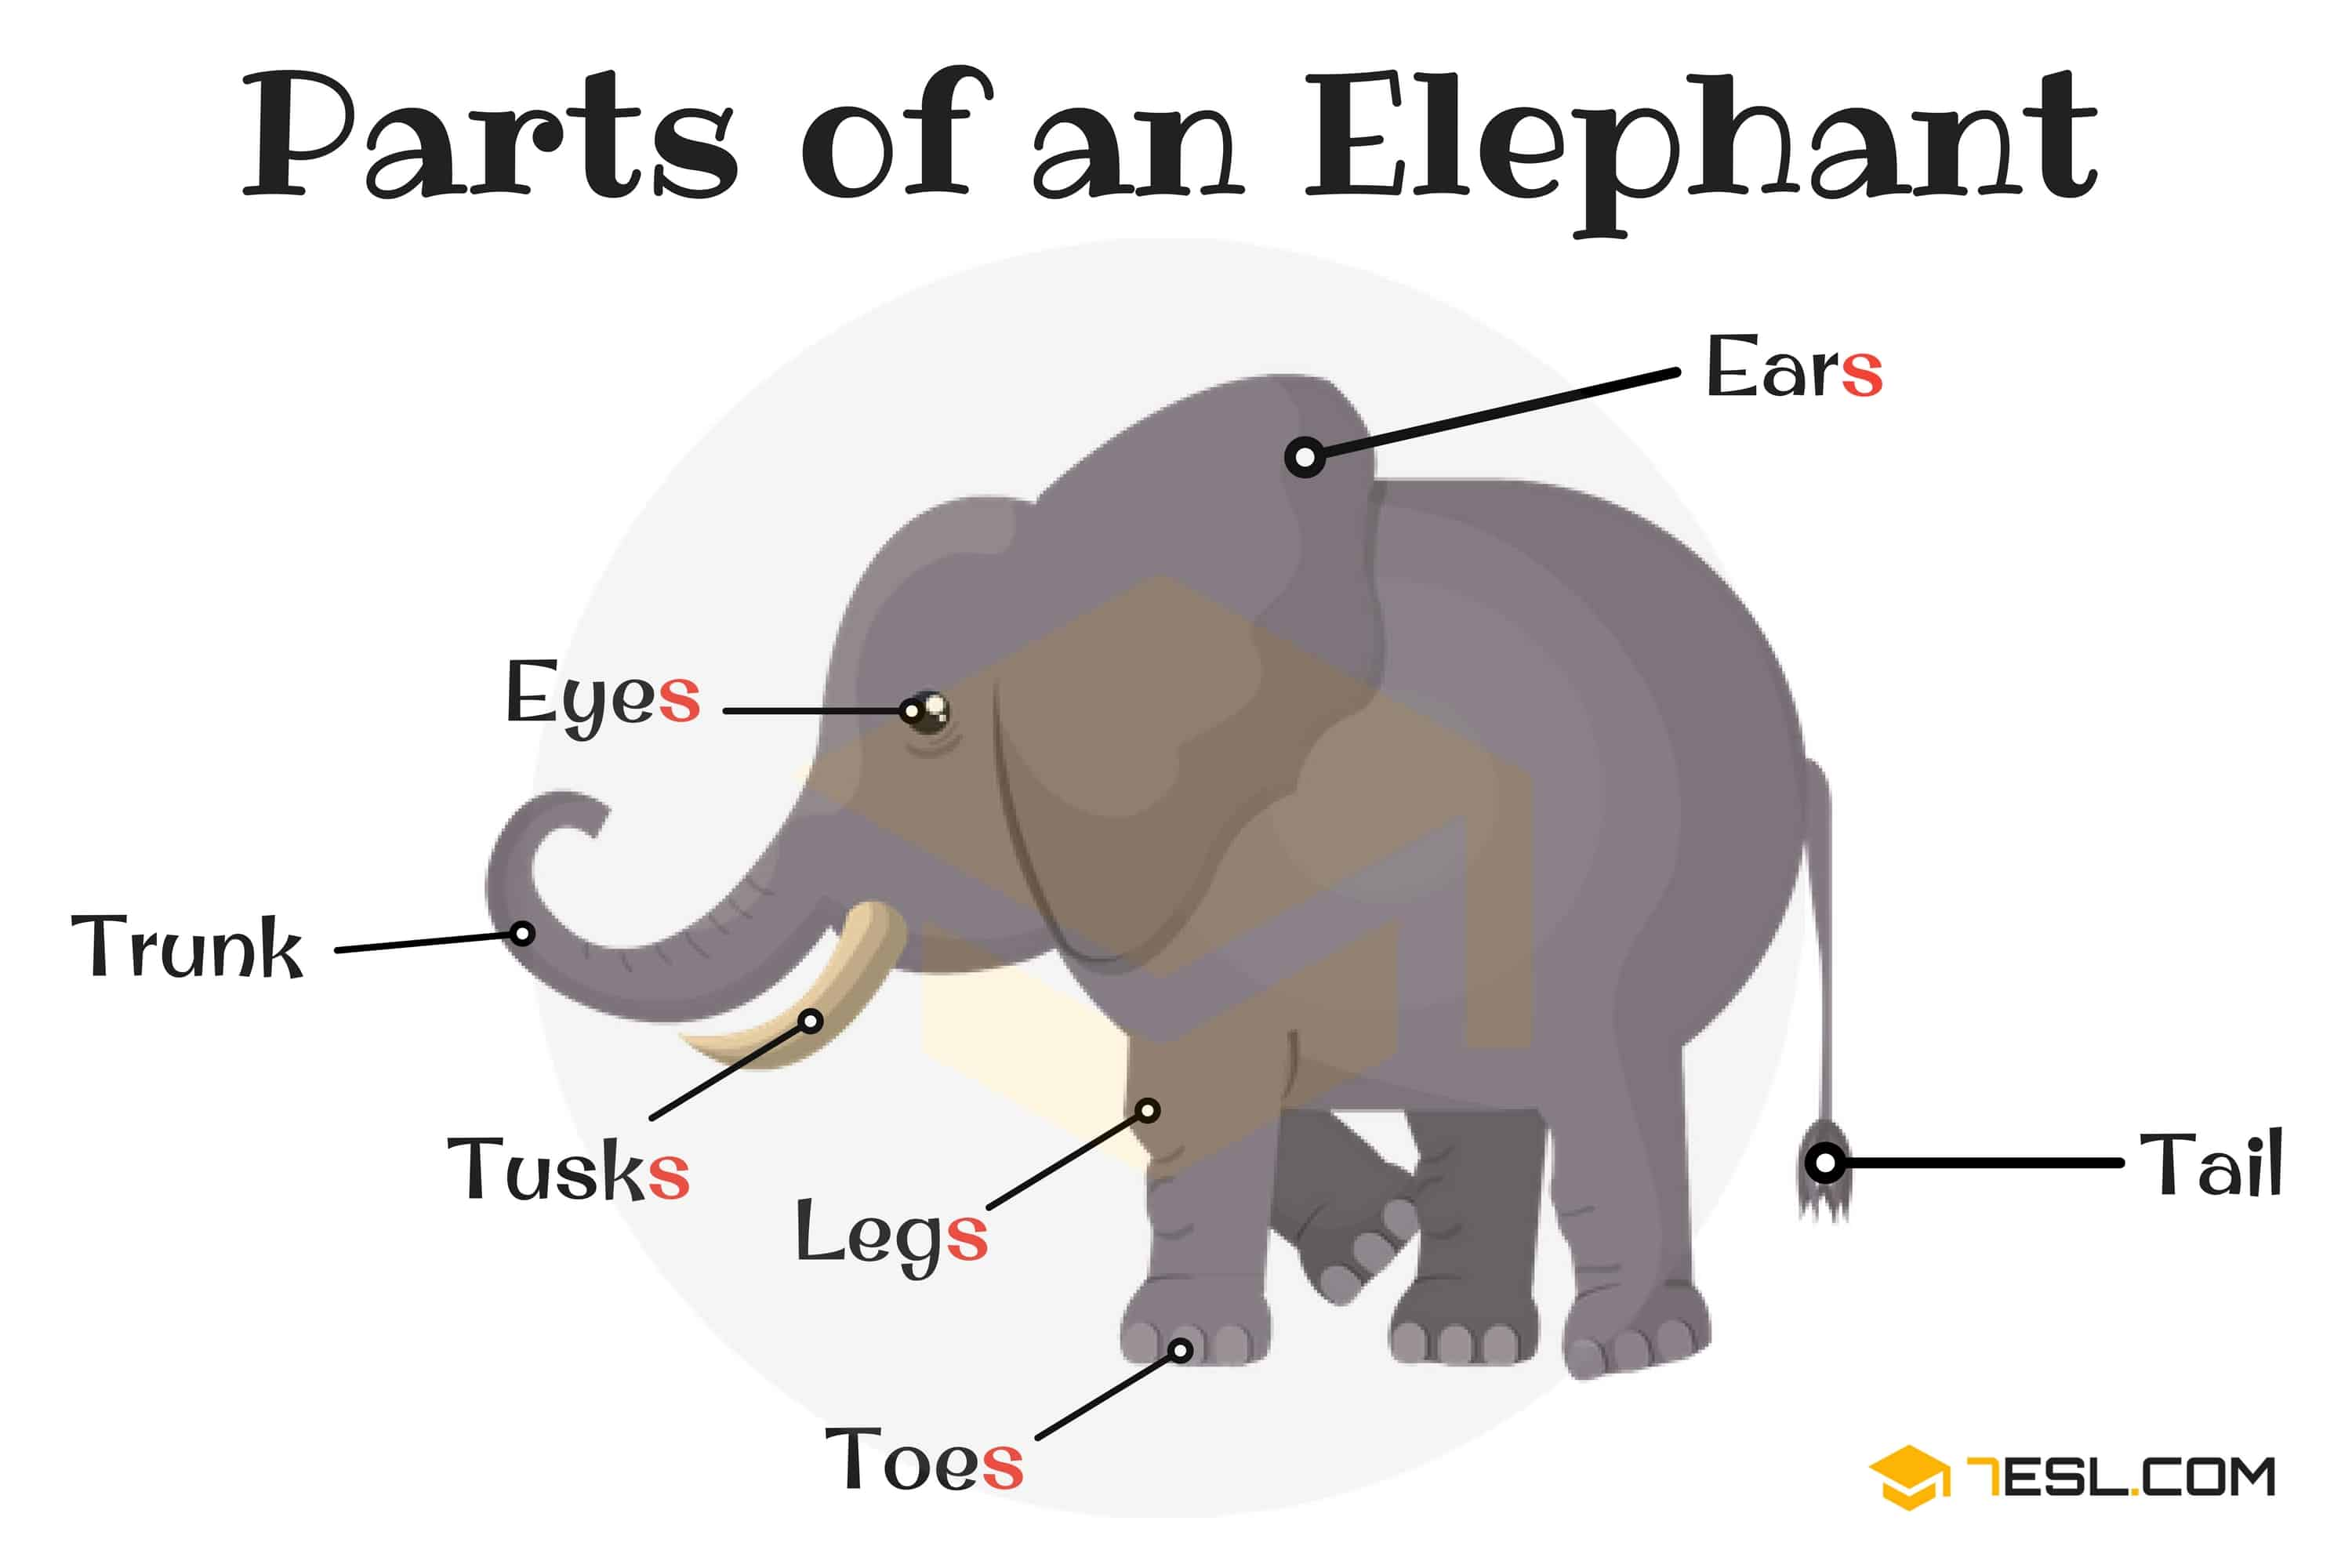 Parts of an Elephant Vocabulary in English